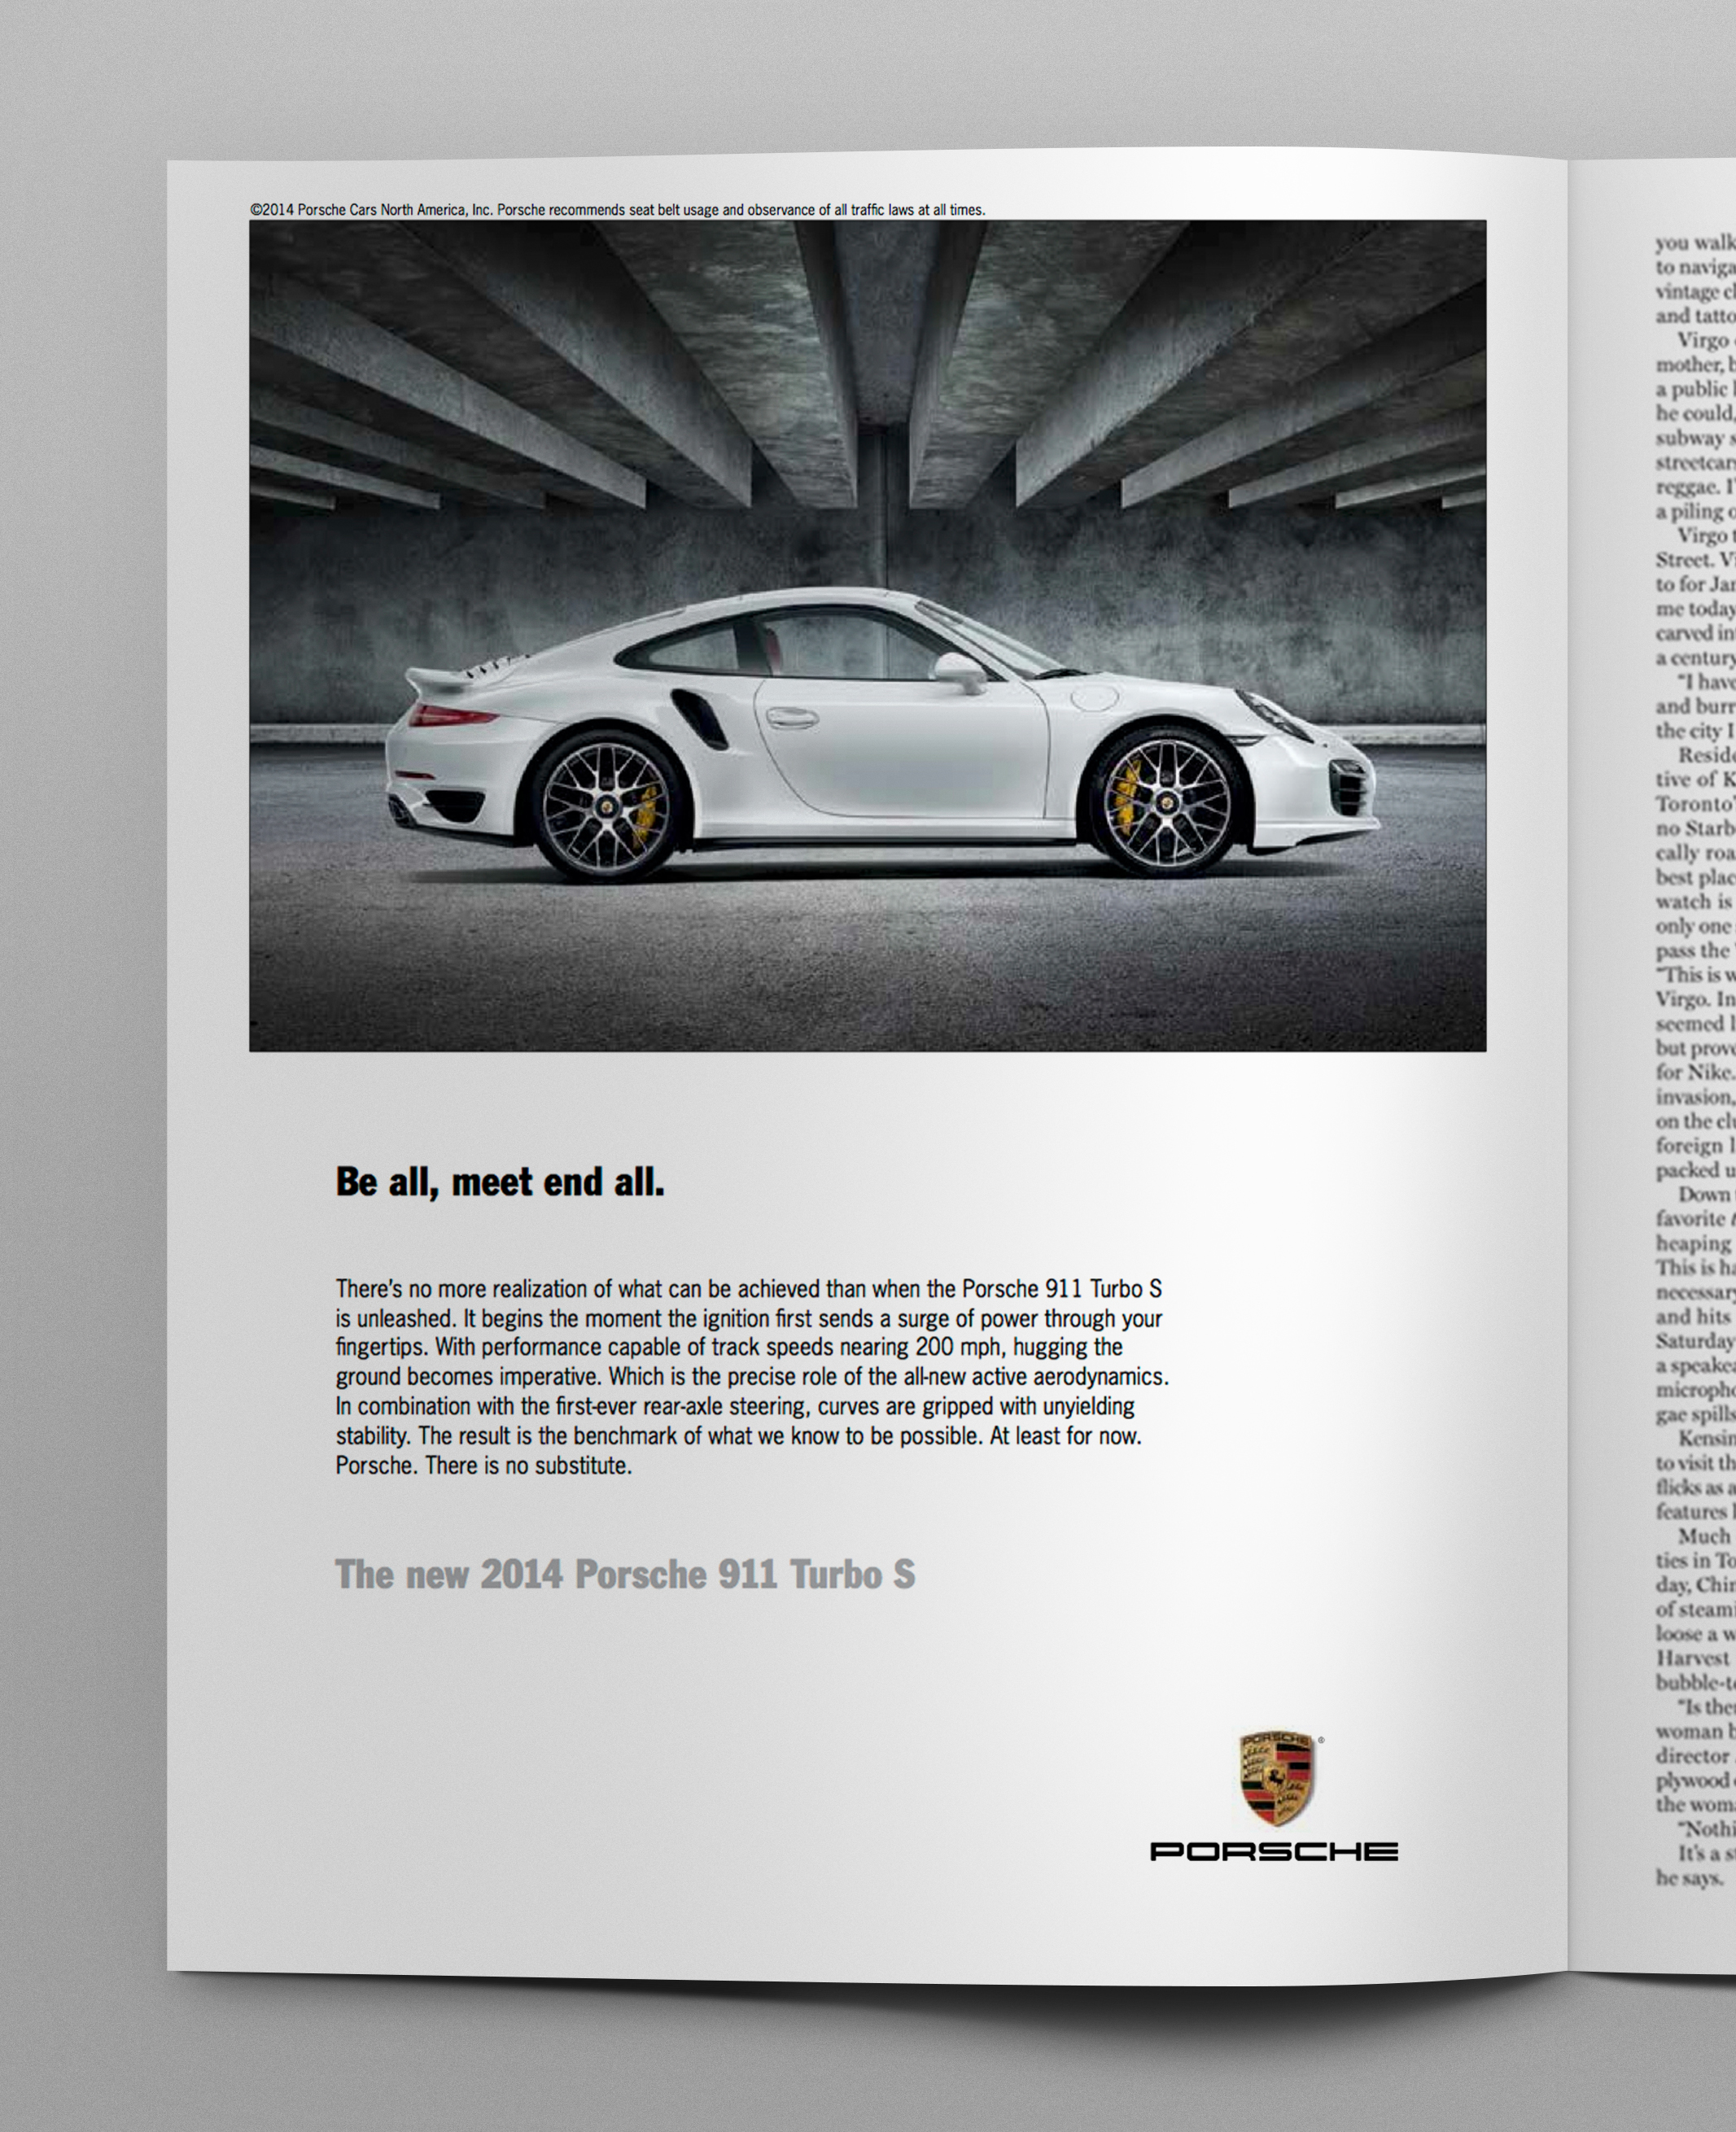 Headline:  Be all, meet end all.  Body copy:   There's no more realization of what can be achieved than when the Porsche 911 Turbo S is unleashed. It begins the moment the ignition first sends a surge of power through your fingertips. With performance capable of track speeds nearing 200 mph, hugging the ground becomes imperative. Which is the precise role of the all-new active aerodynamics. In combination with the first-ever rear-axle steering, curves are gripped with unyielding stability. The result is the benchmark of what we know to be possible. At least for now. Porsche. There is no substitute.